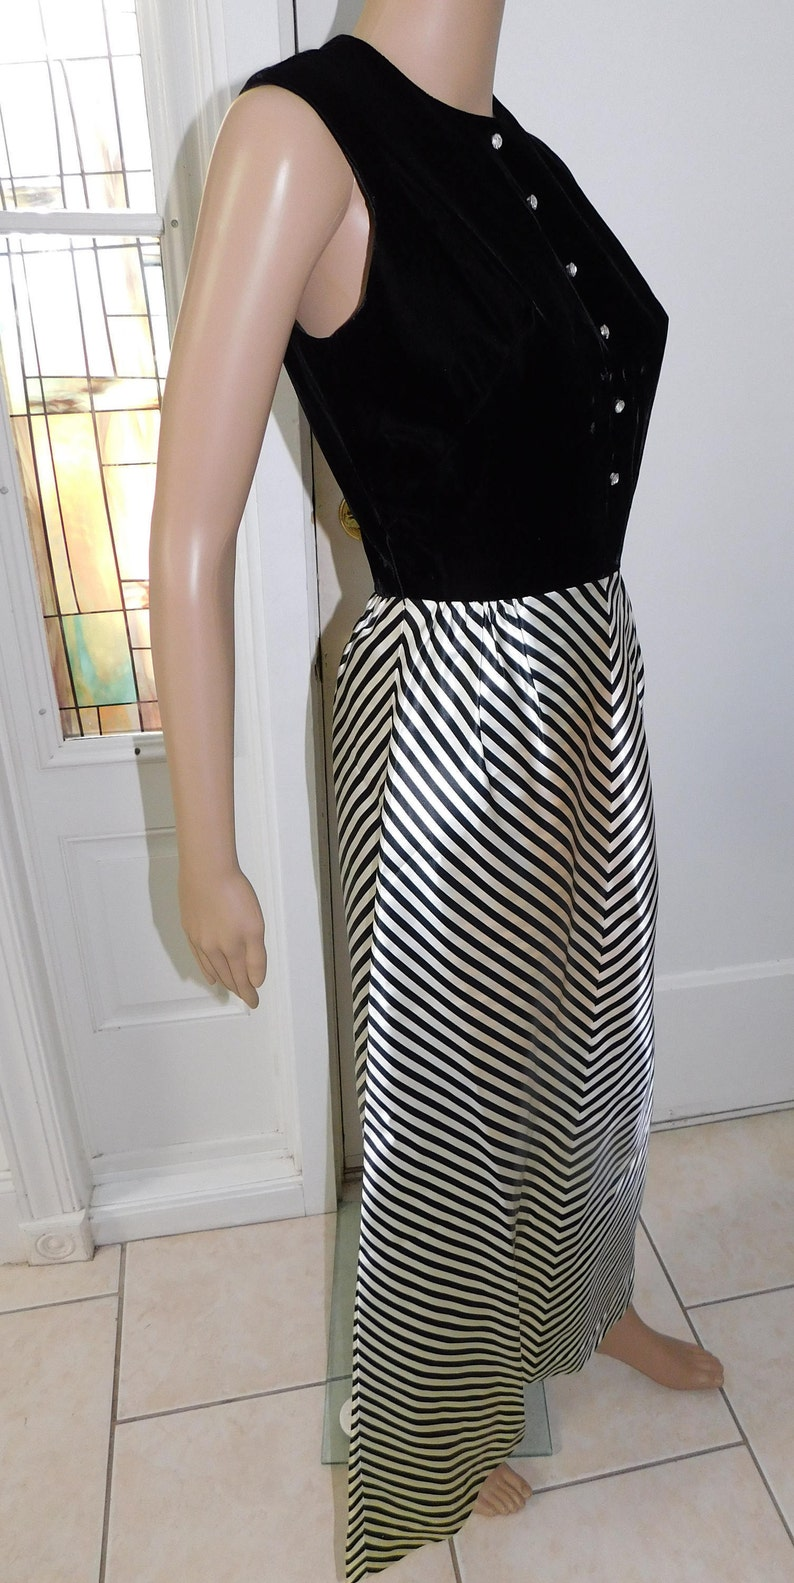 Thigh High Velvet Gown Couture Jackie O Formal Gown  Small Medium Vintage 60s Built in Shorts Zebra Striped gown Striped Gown